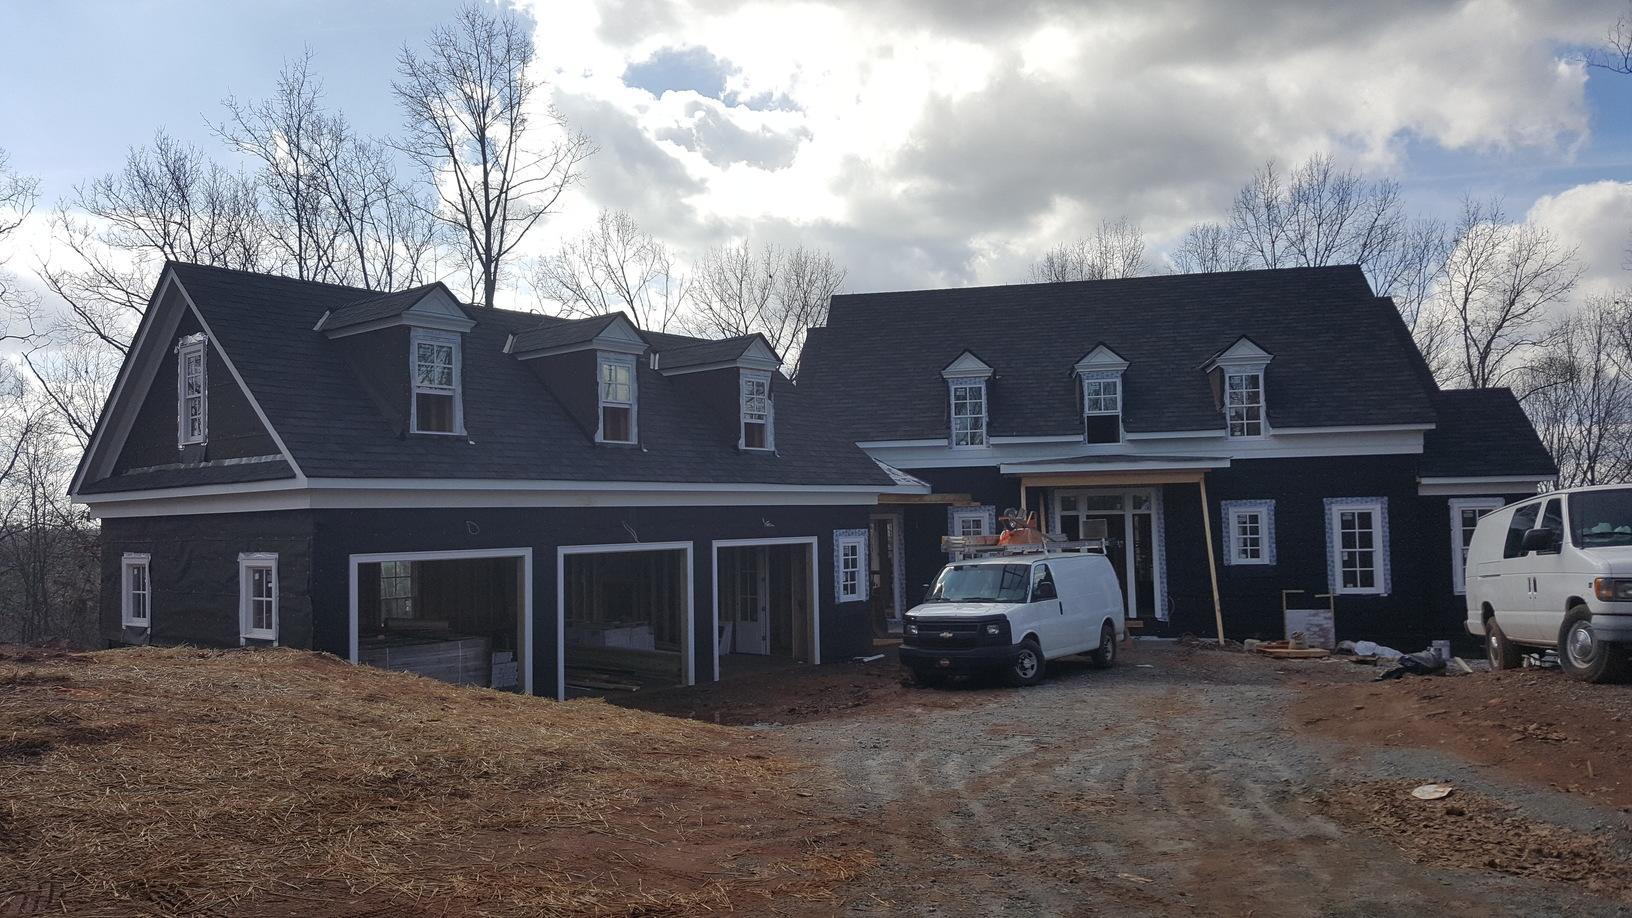 Roof Replacement for a Custom Home Construction in Alpharetta, GA - After Photo